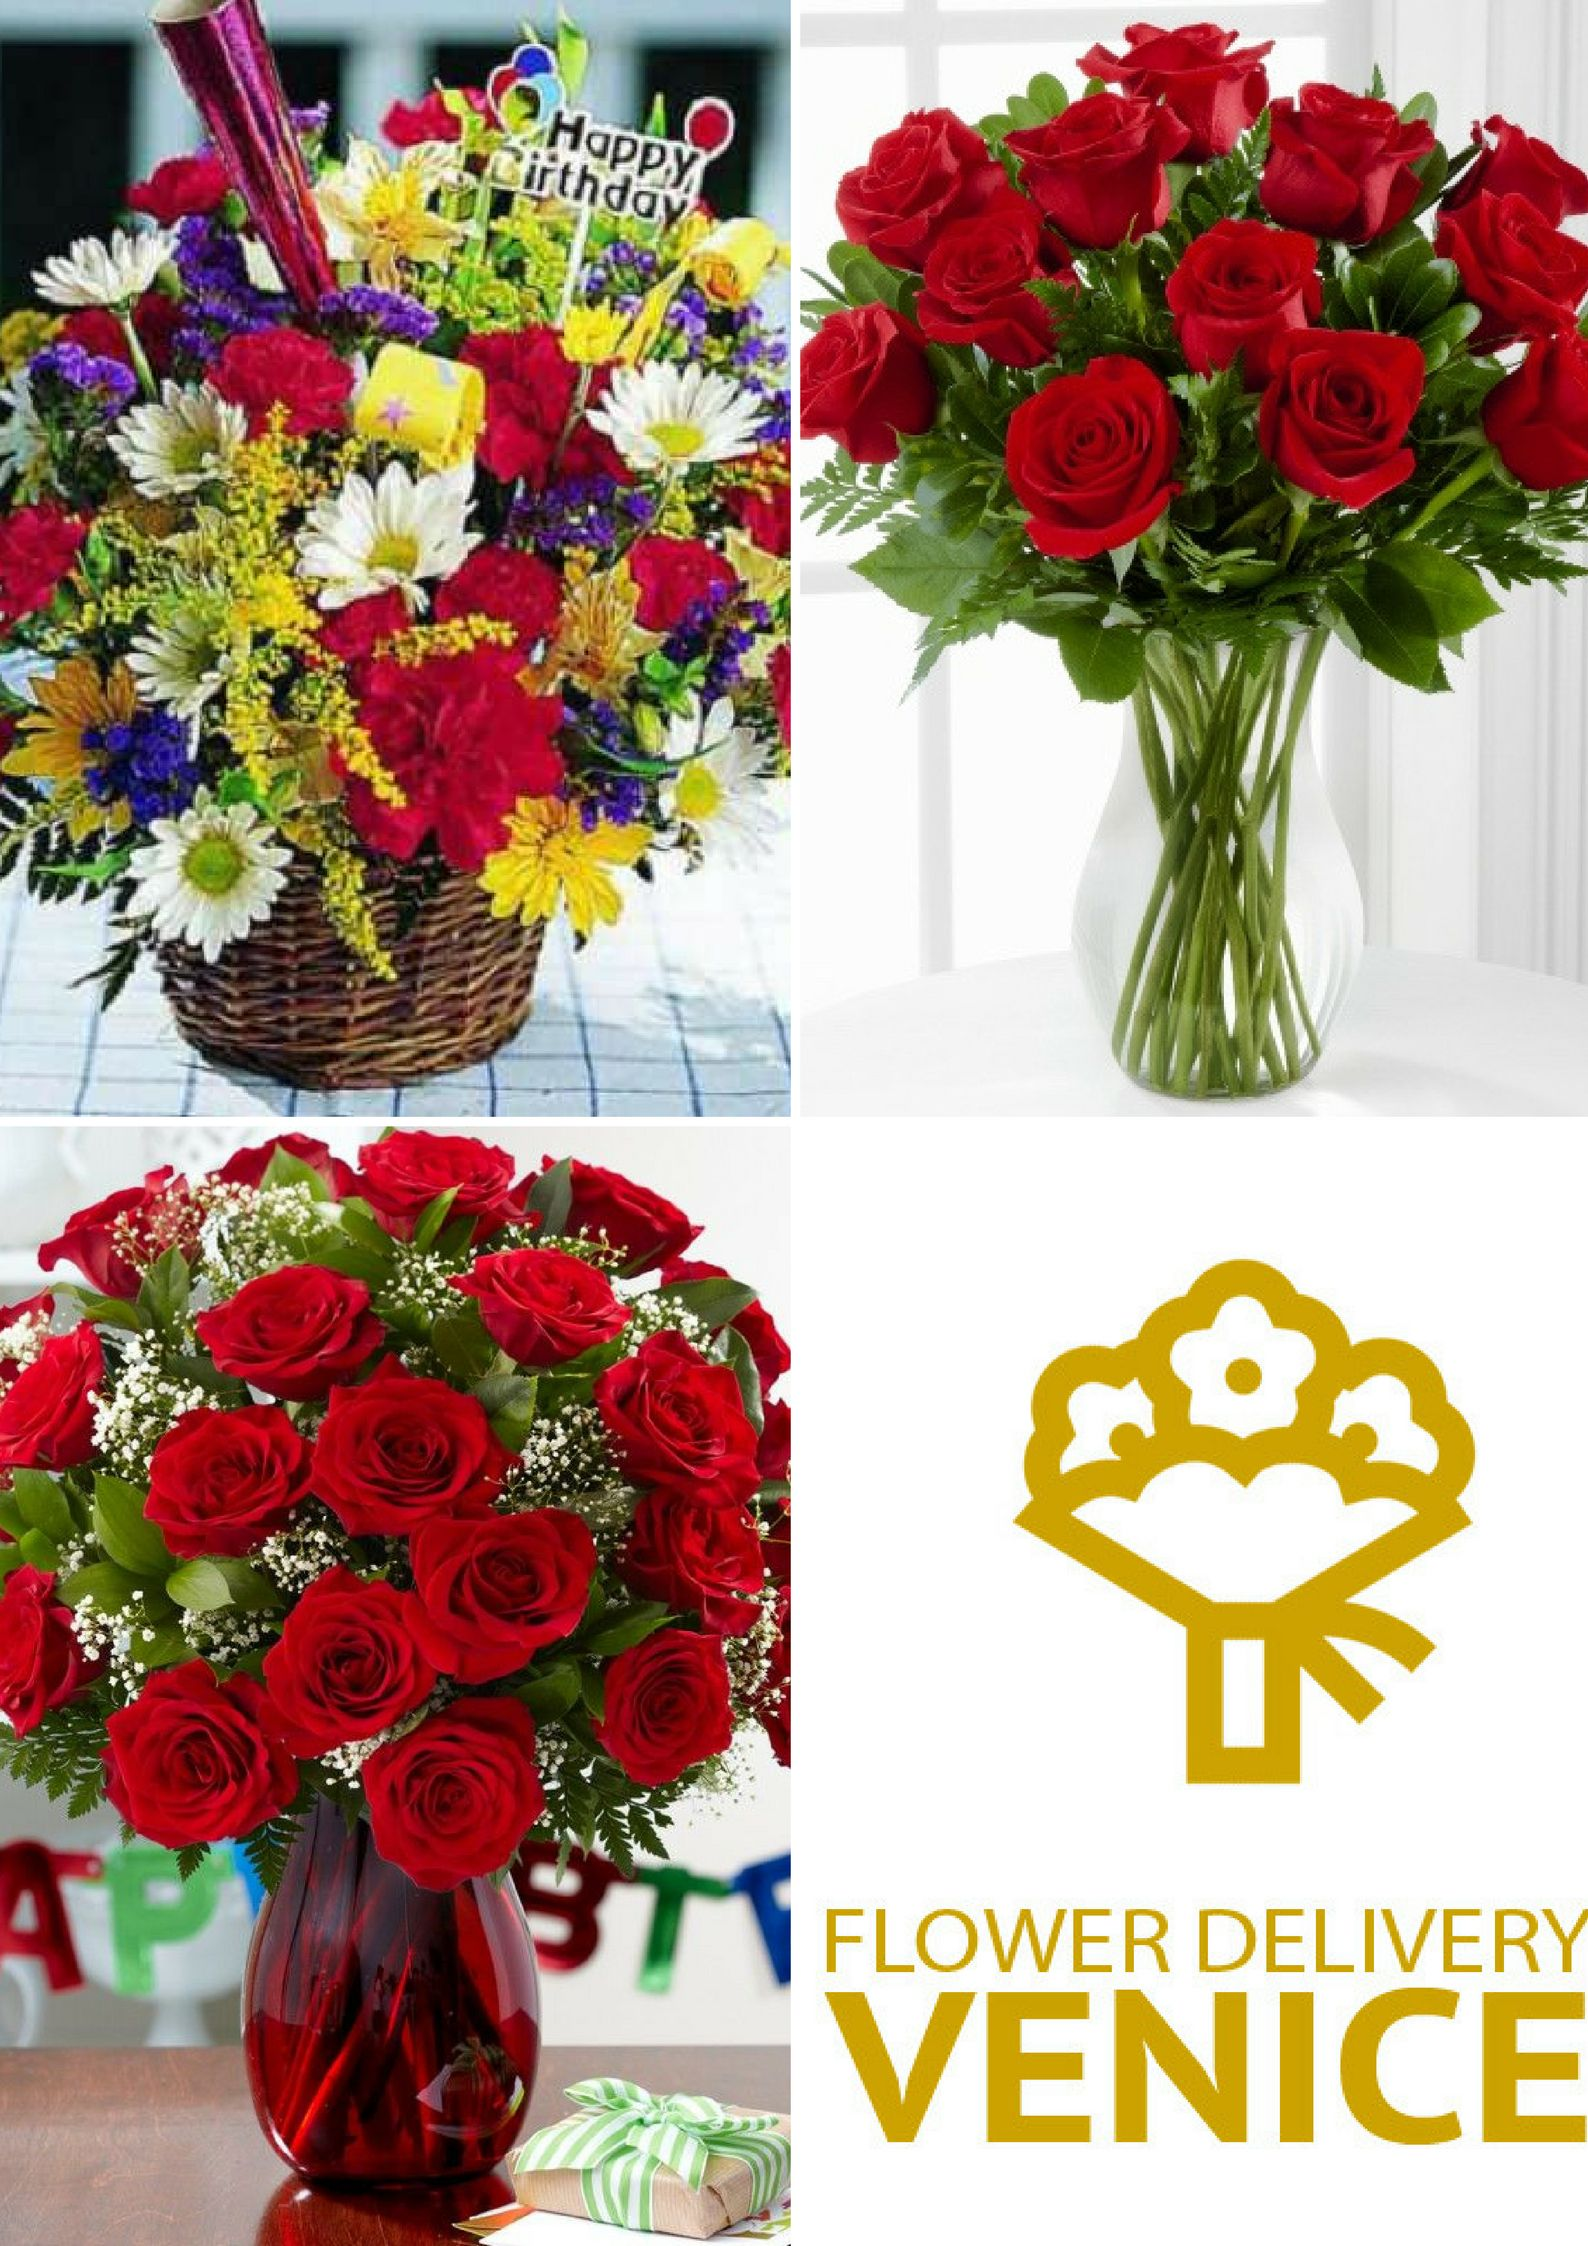 Get gorgeous flower at your best price with same day delivery get gorgeous flower at your best price with same day delivery flowerdeliveryvenice flower florist birthday anniversary multicoloredbouquets stunning izmirmasajfo